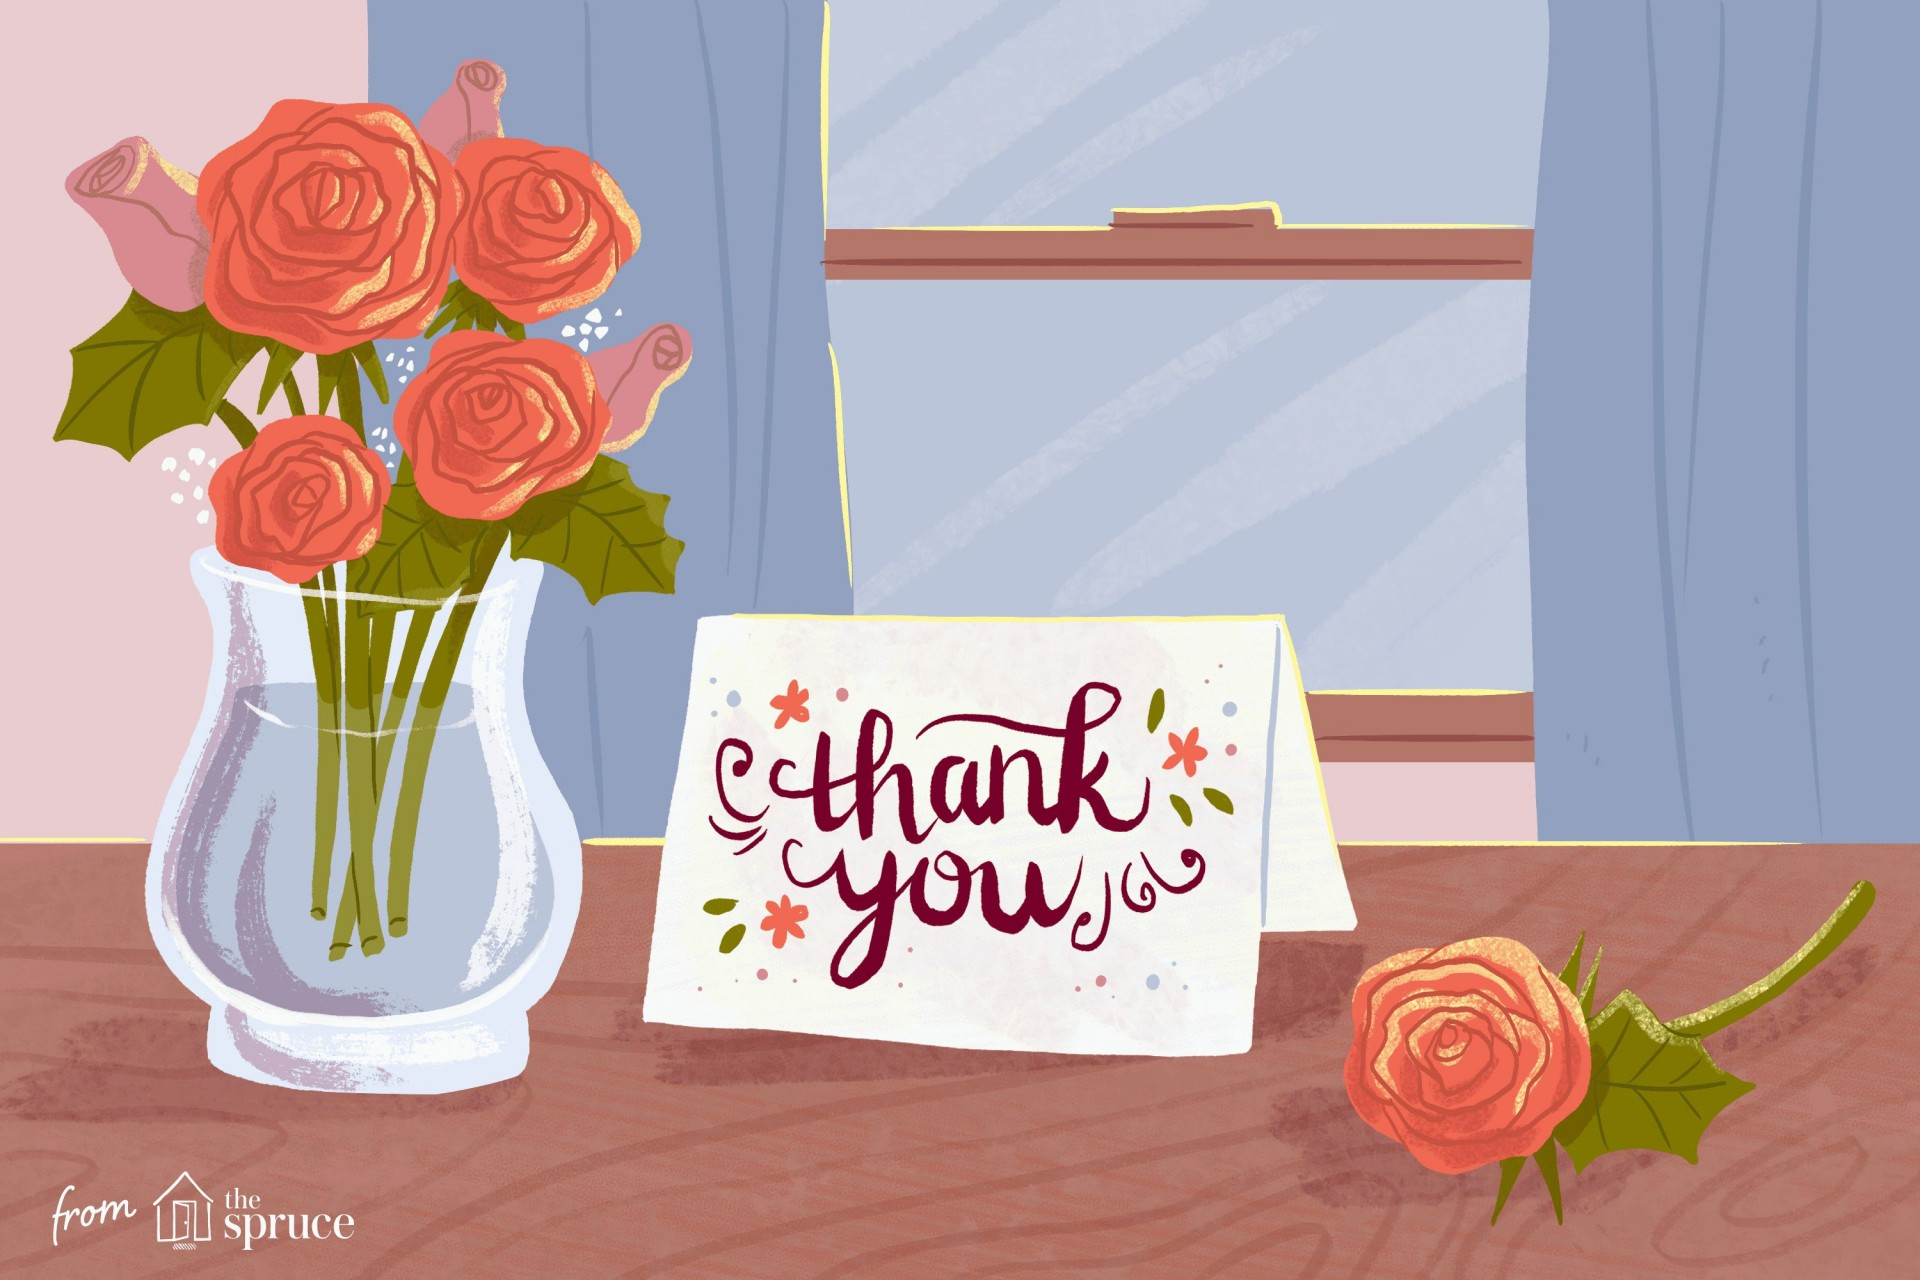 005 Wonderful Free Thank You Card Template Photo  Google Doc For Funeral Microsoft Word1920